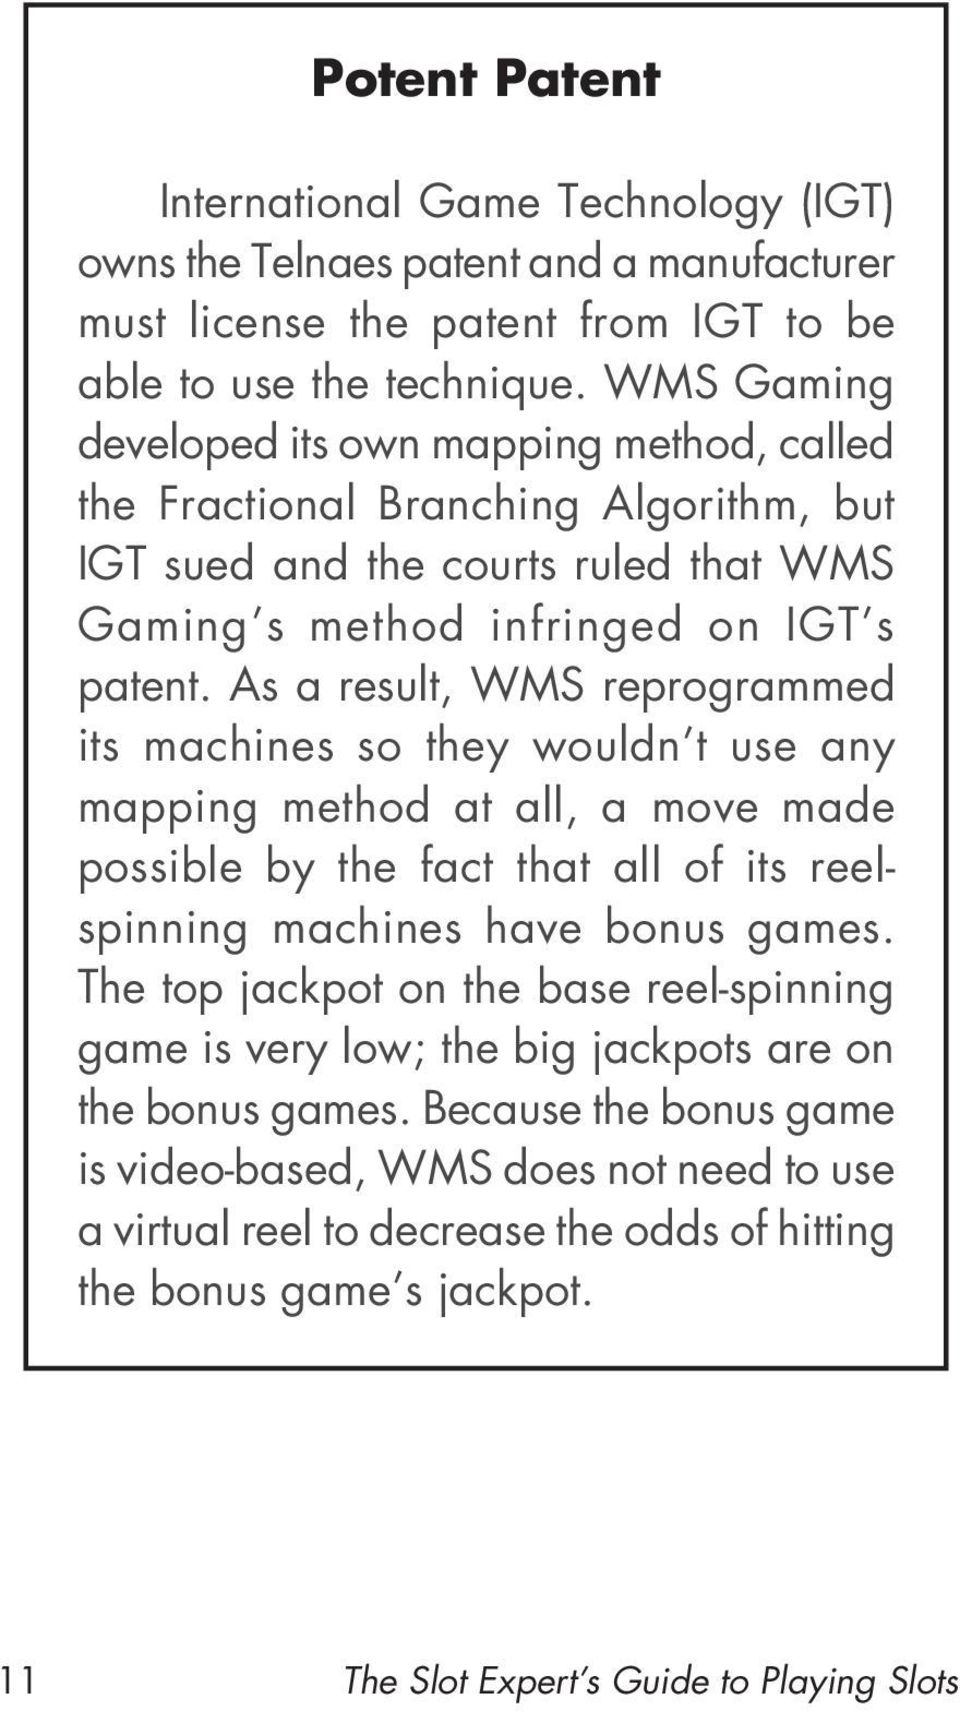 As a result, WMS reprogrammed its machines so they wouldn t use any mapping method at all, a move made possible by the fact that all of its reelspinning machines have bonus games.